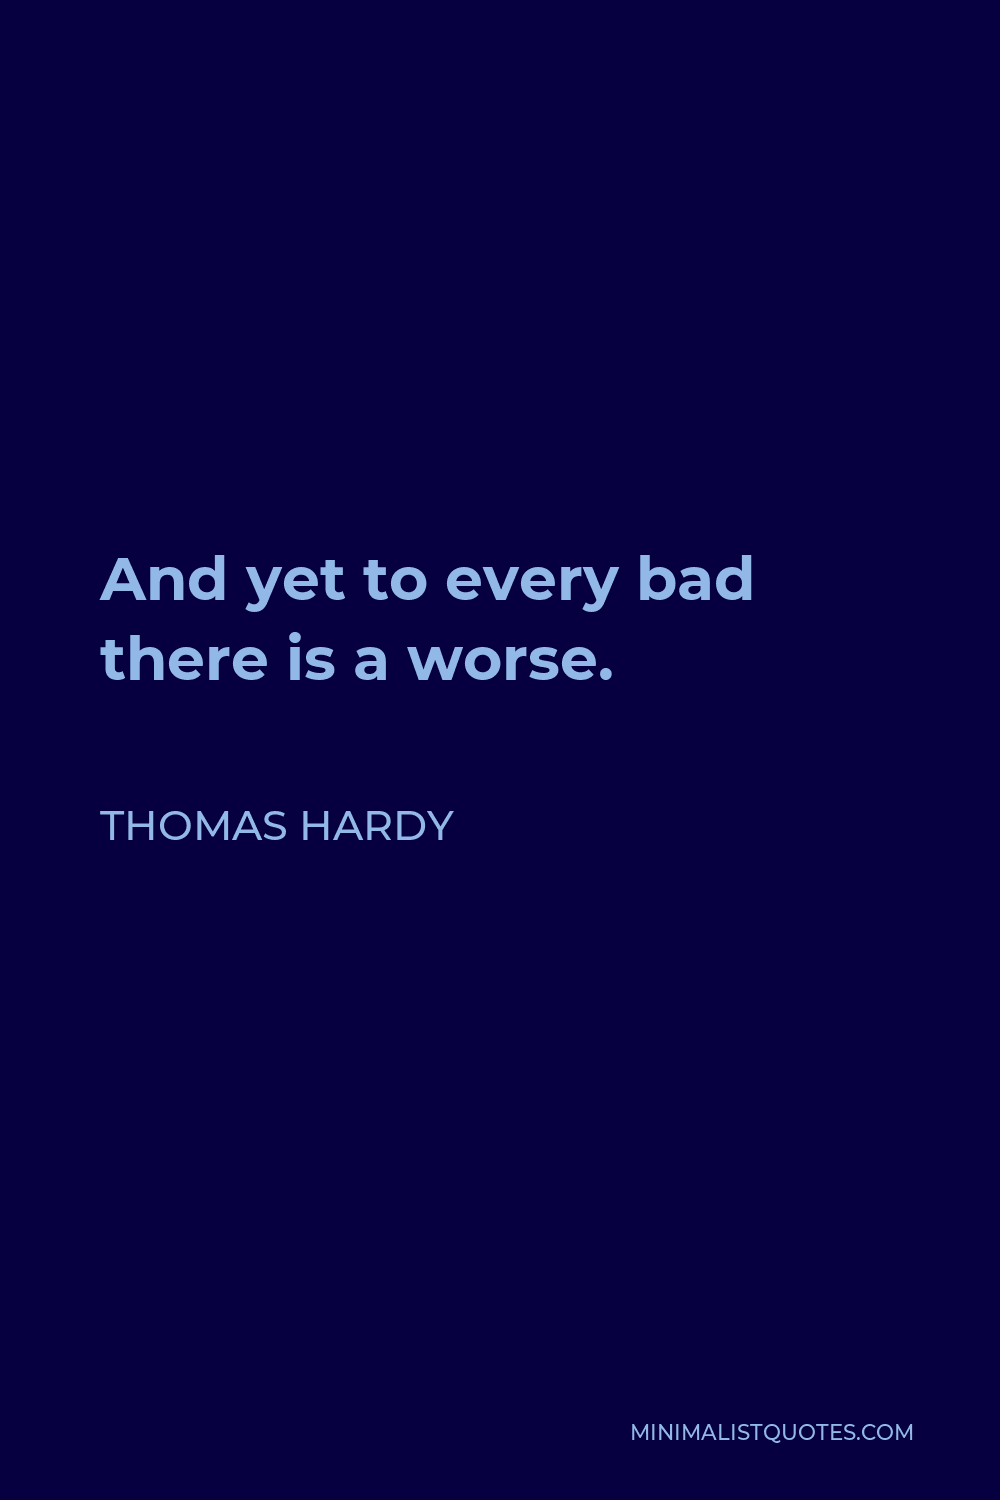 Thomas Hardy Quote - And yet to every bad there is a worse.